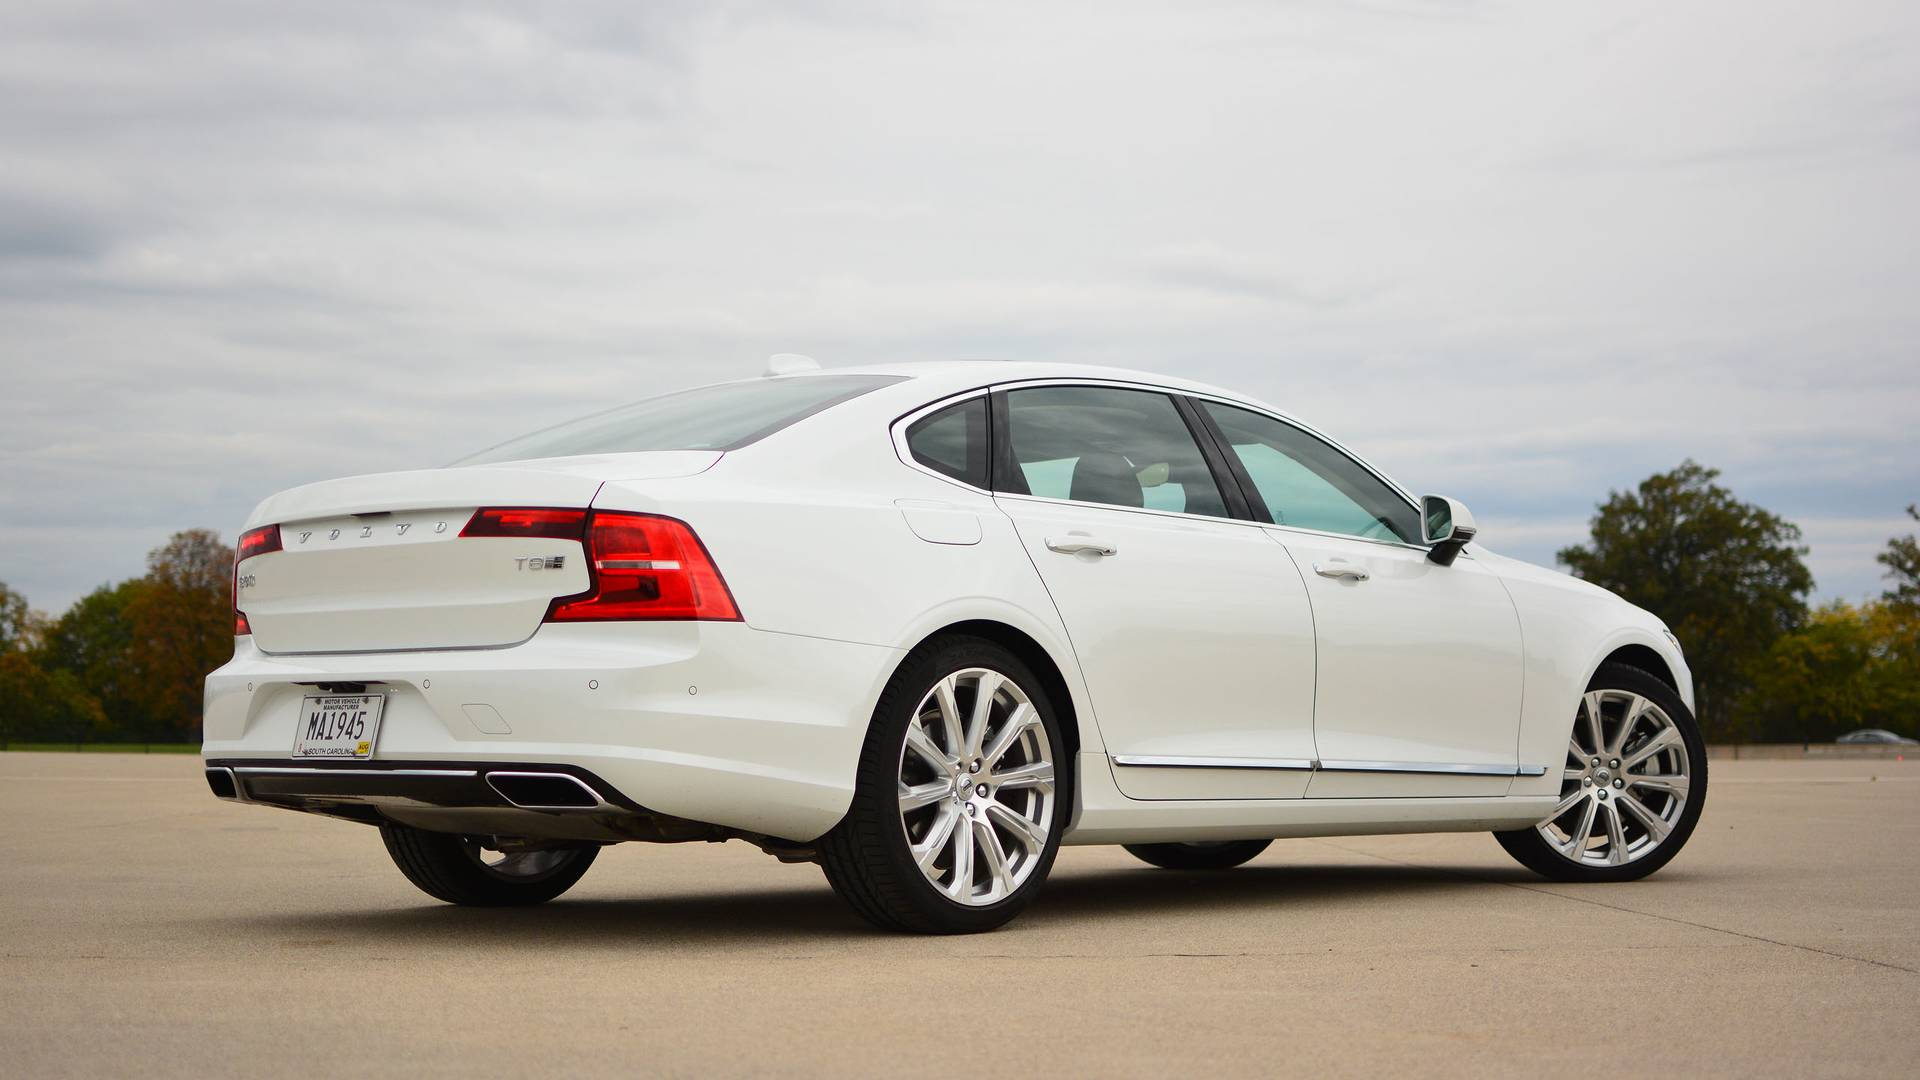 2018 Volvo S90 T8 Review: Efficiency Done With Style